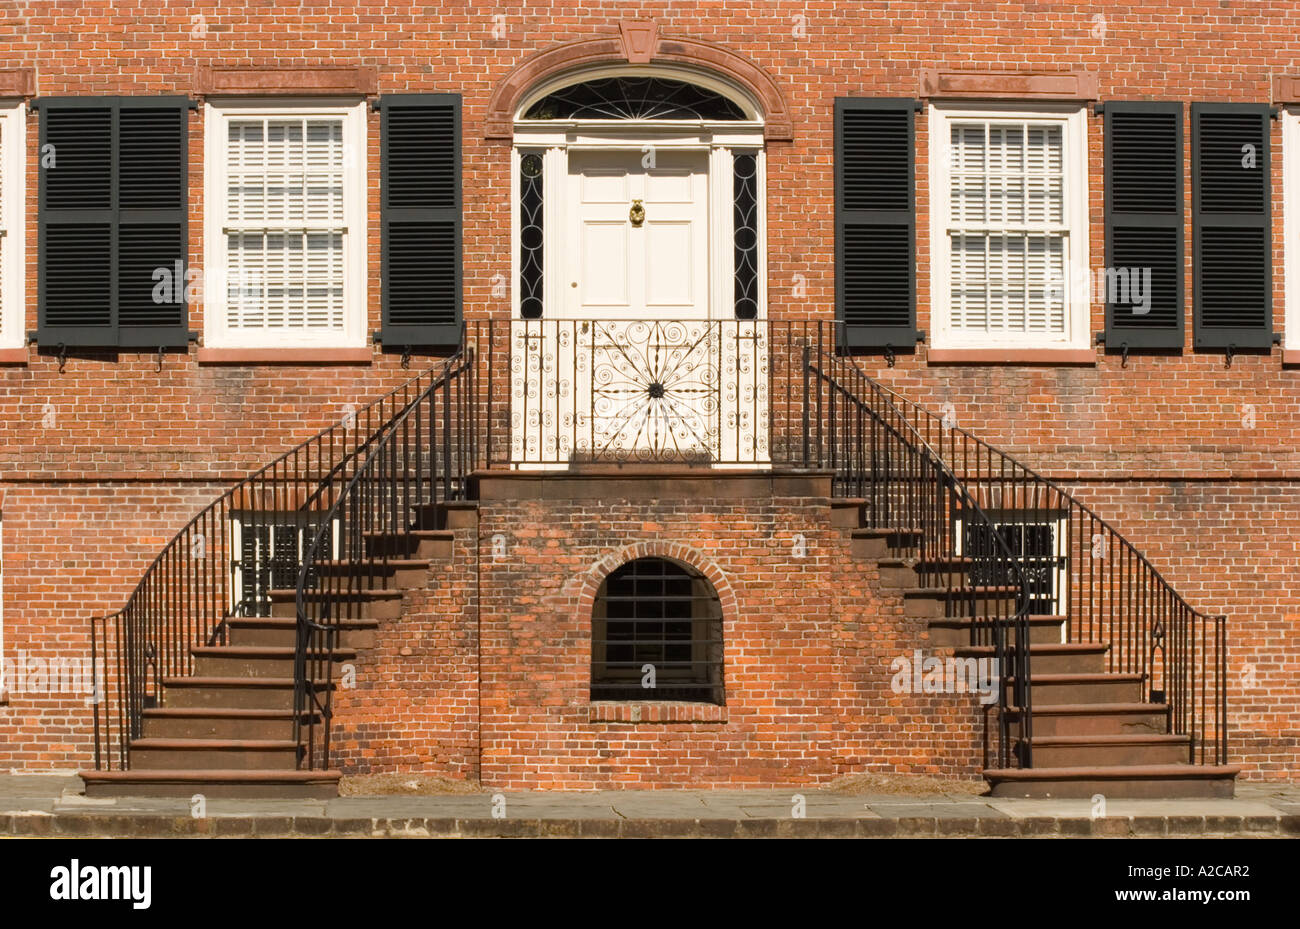 Front door and staircases of the Federal Style Isaiah Davenport House in Columbia Square Savannah - Stock Image